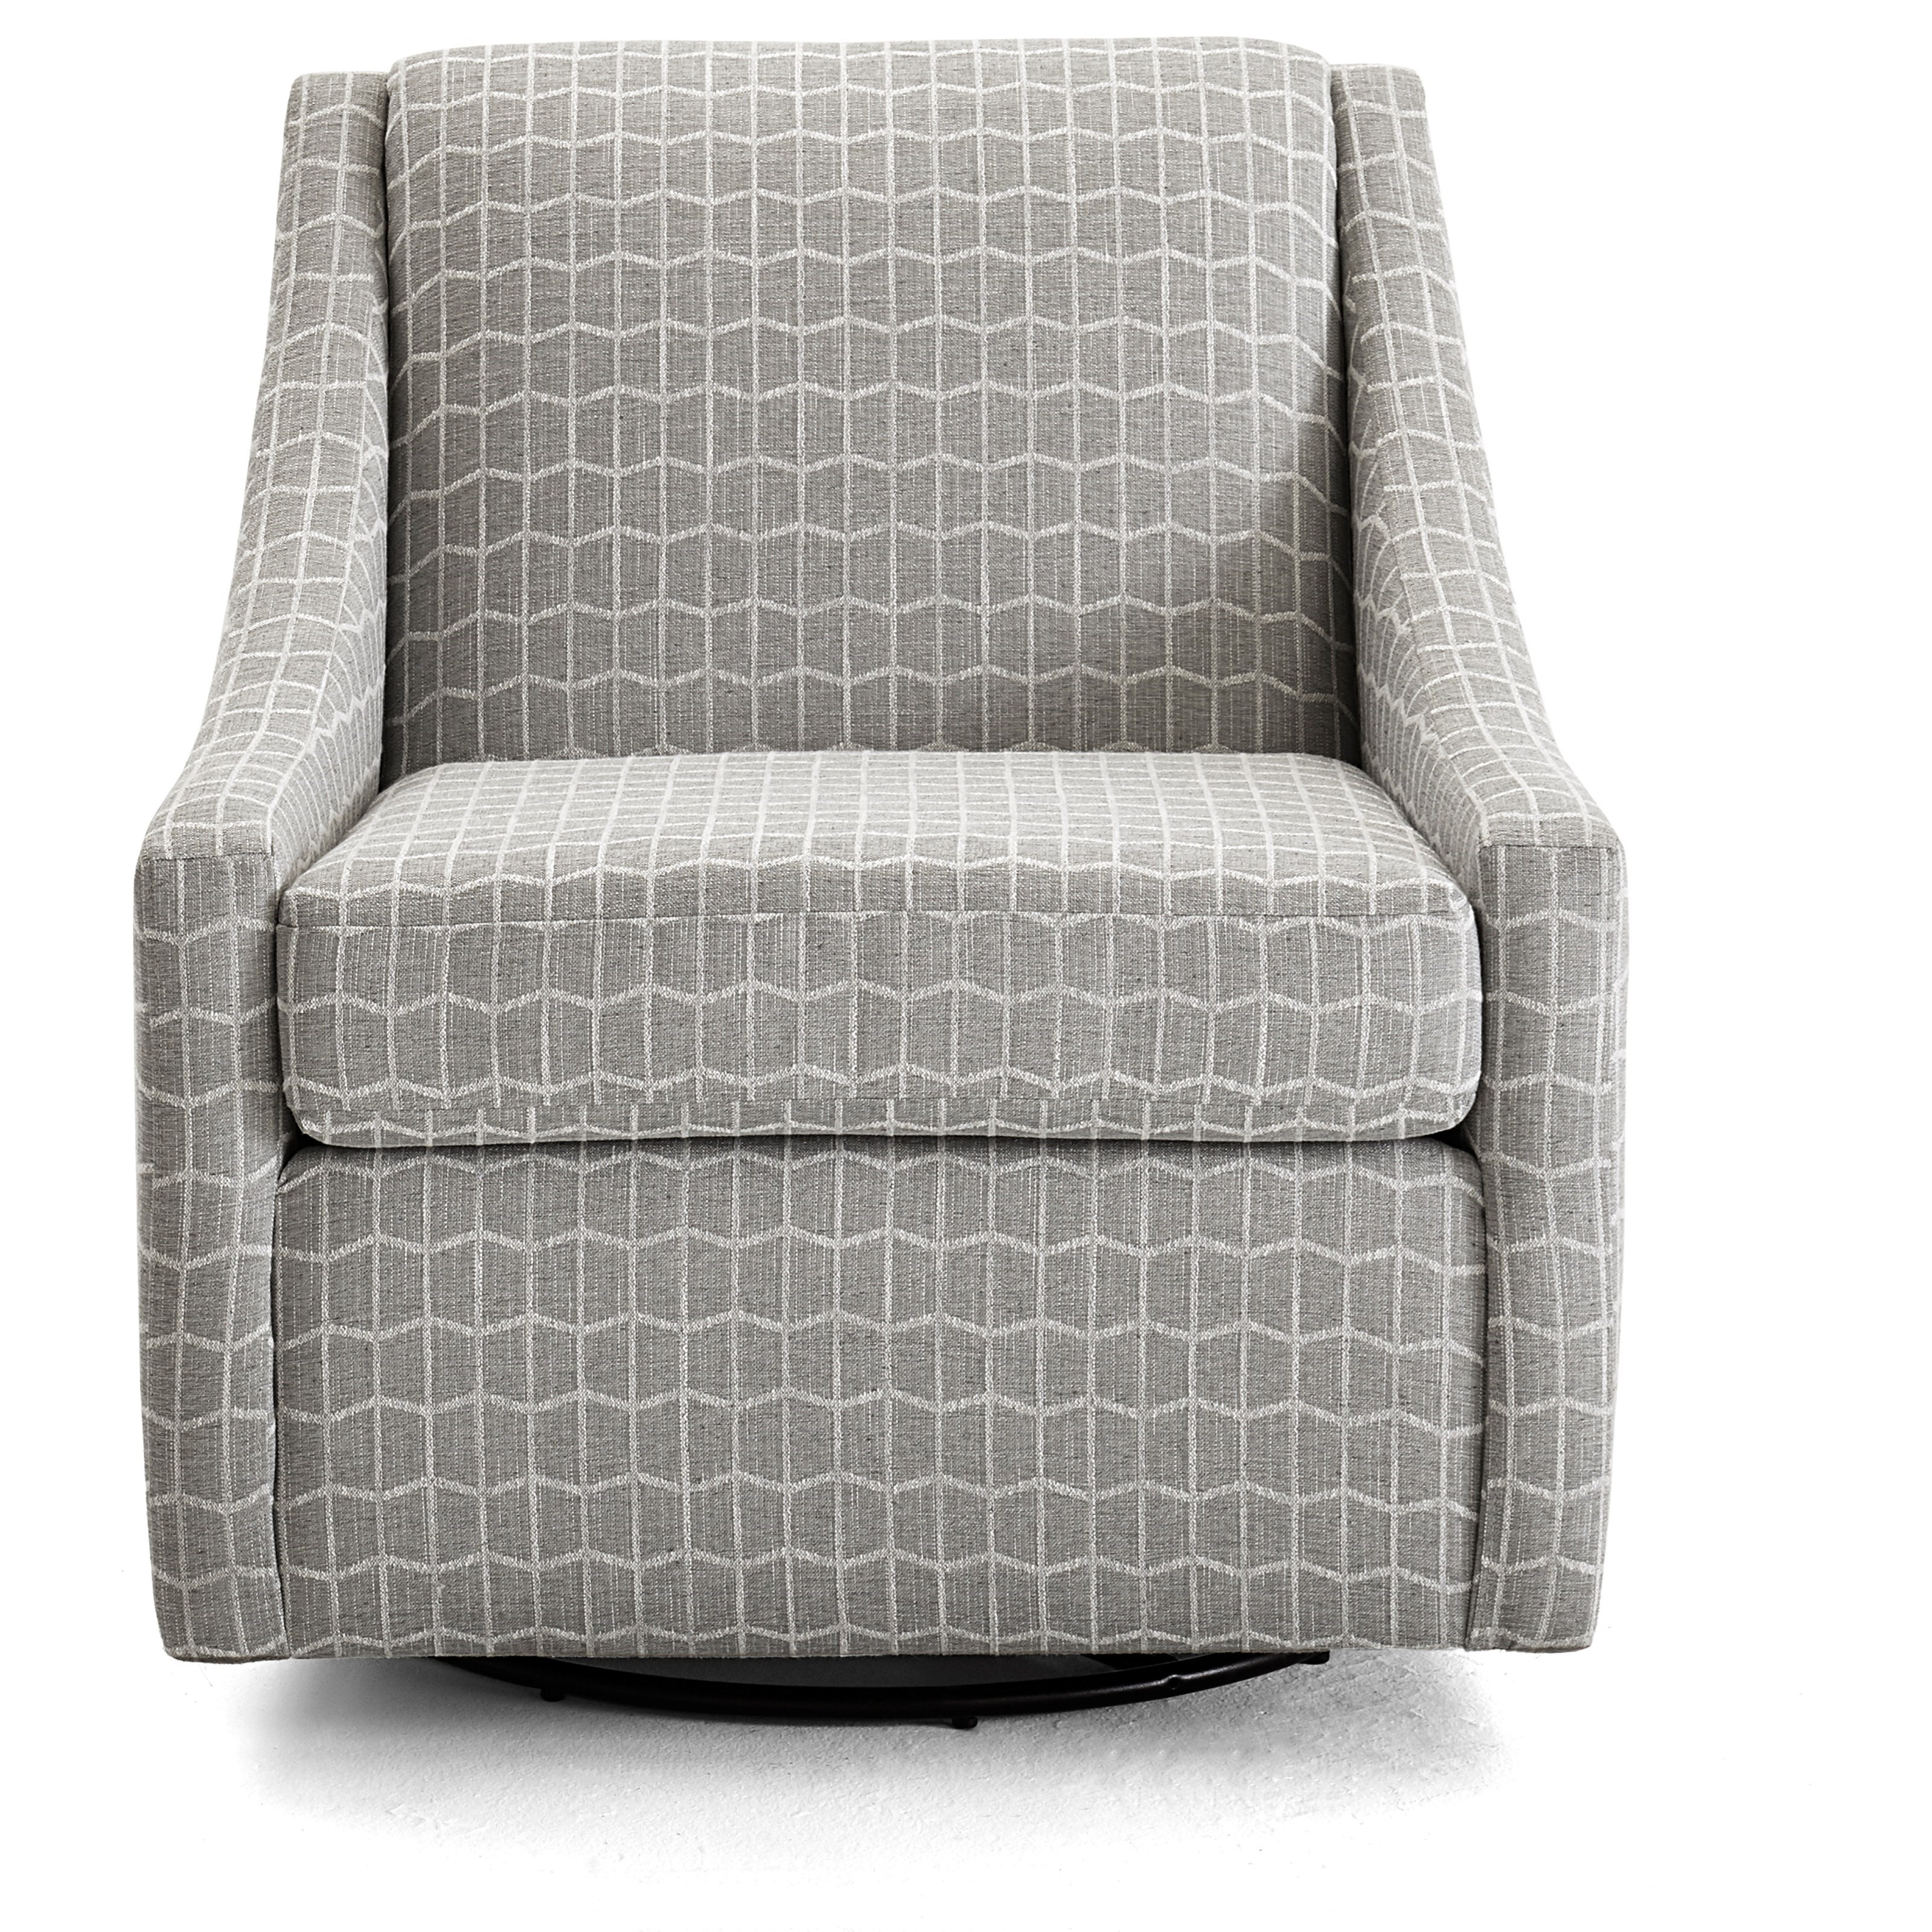 Regan Swivel Glider Chair by Best Home Furnishings at Baer's Furniture